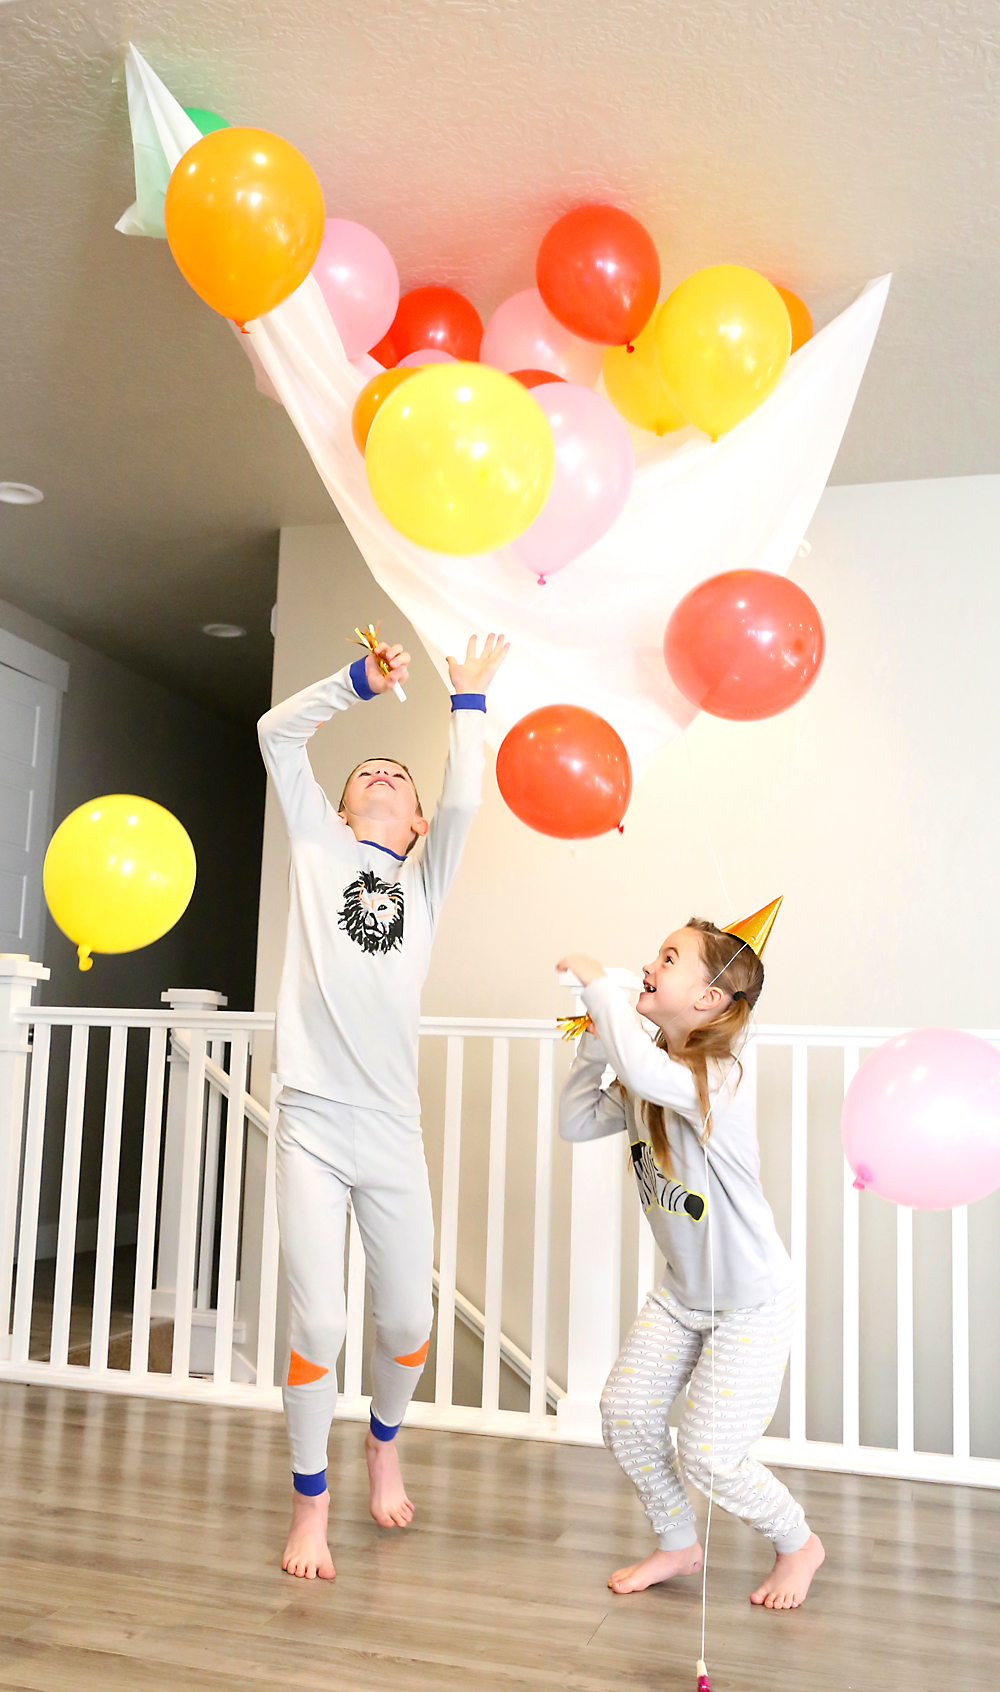 "So fun! Make an easy balloon drop for New Year's Eve with supplies from the dollar store - then drop it whenever you want it to be ""midnight""! Great idea for New Year's Eve at home with kids."